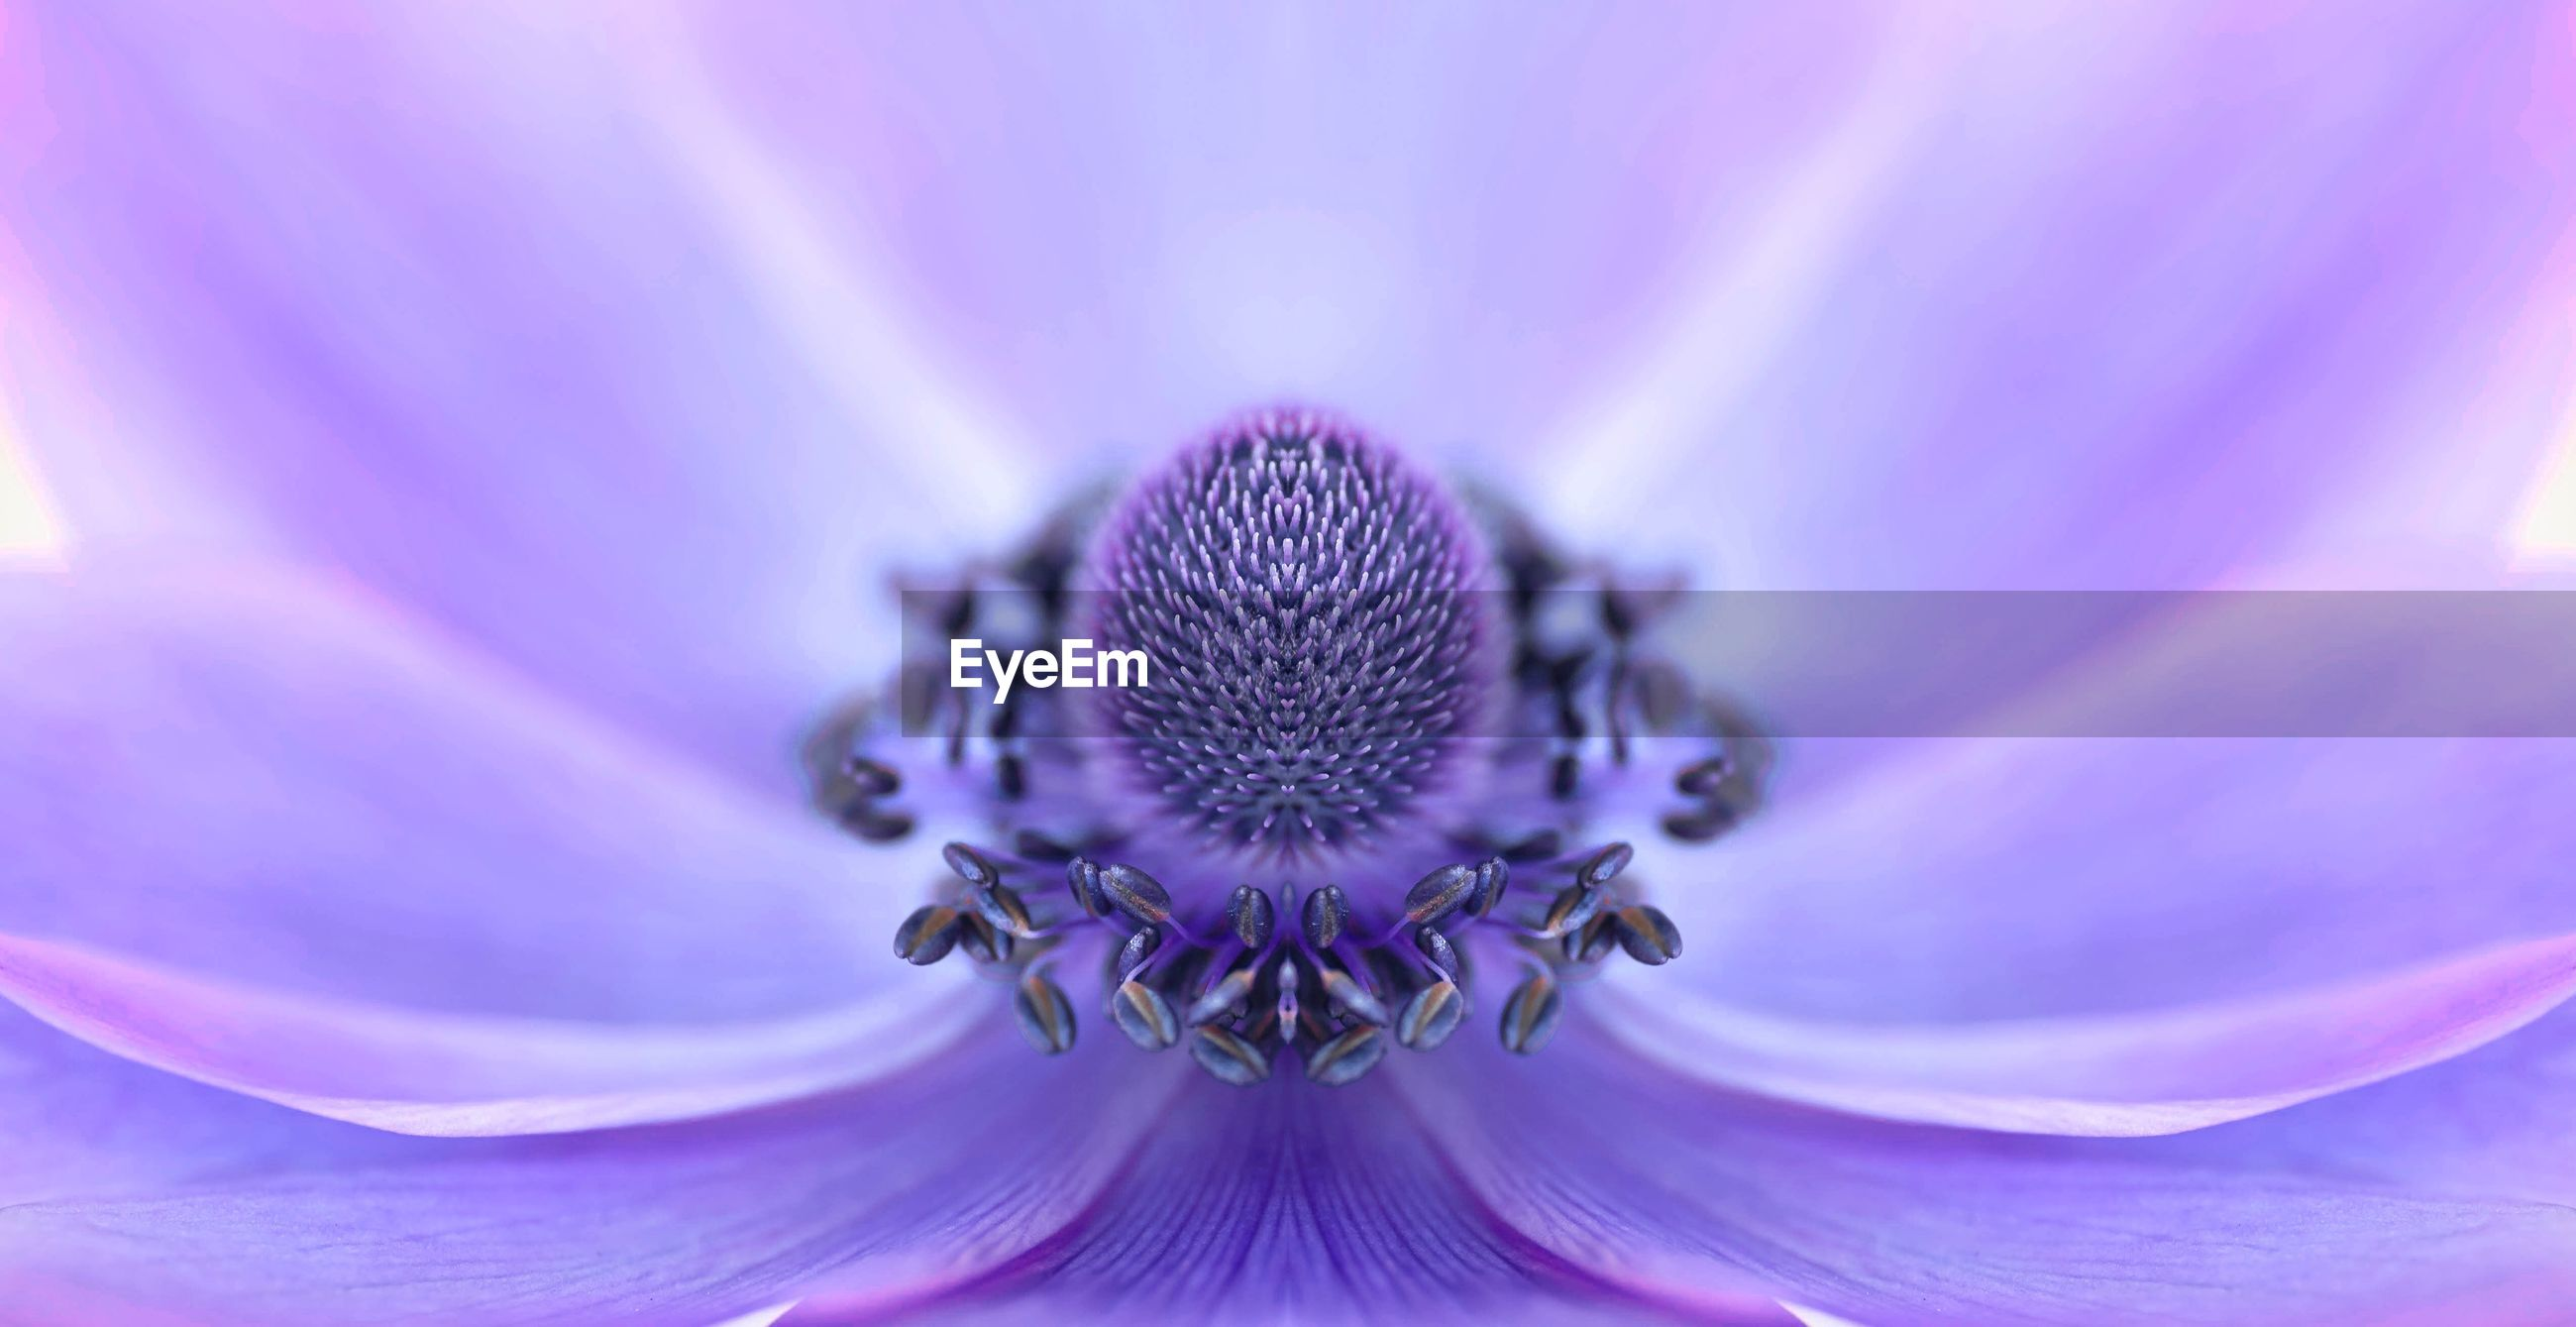 EXTREME CLOSE-UP OF PURPLE FLOWER